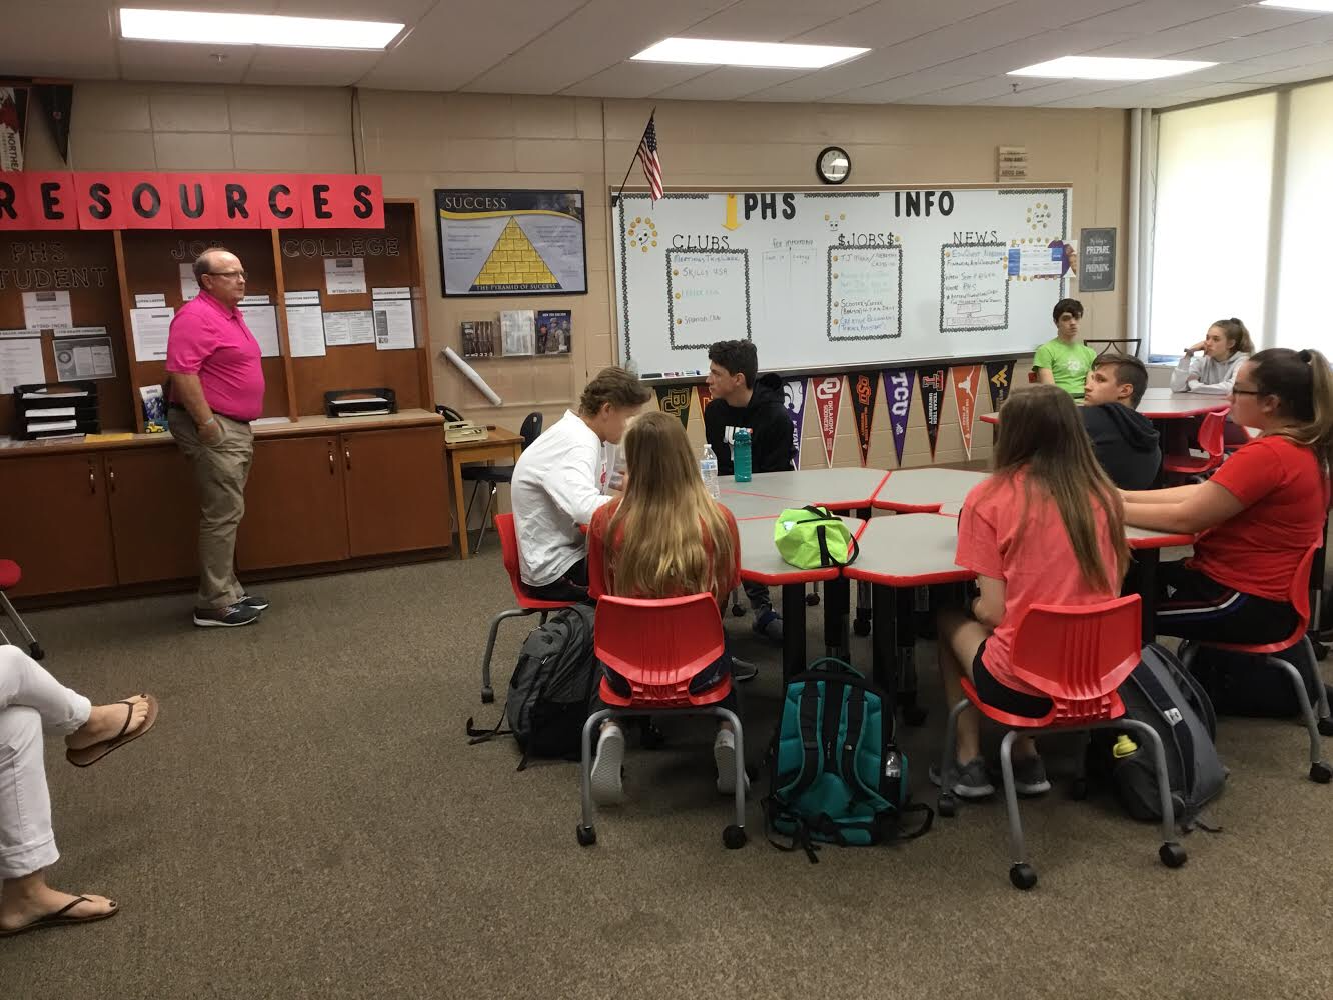 Mr. Jennings explains the resources that are available at the College/Career Center to Mrs. Falch's attentive advisory students.